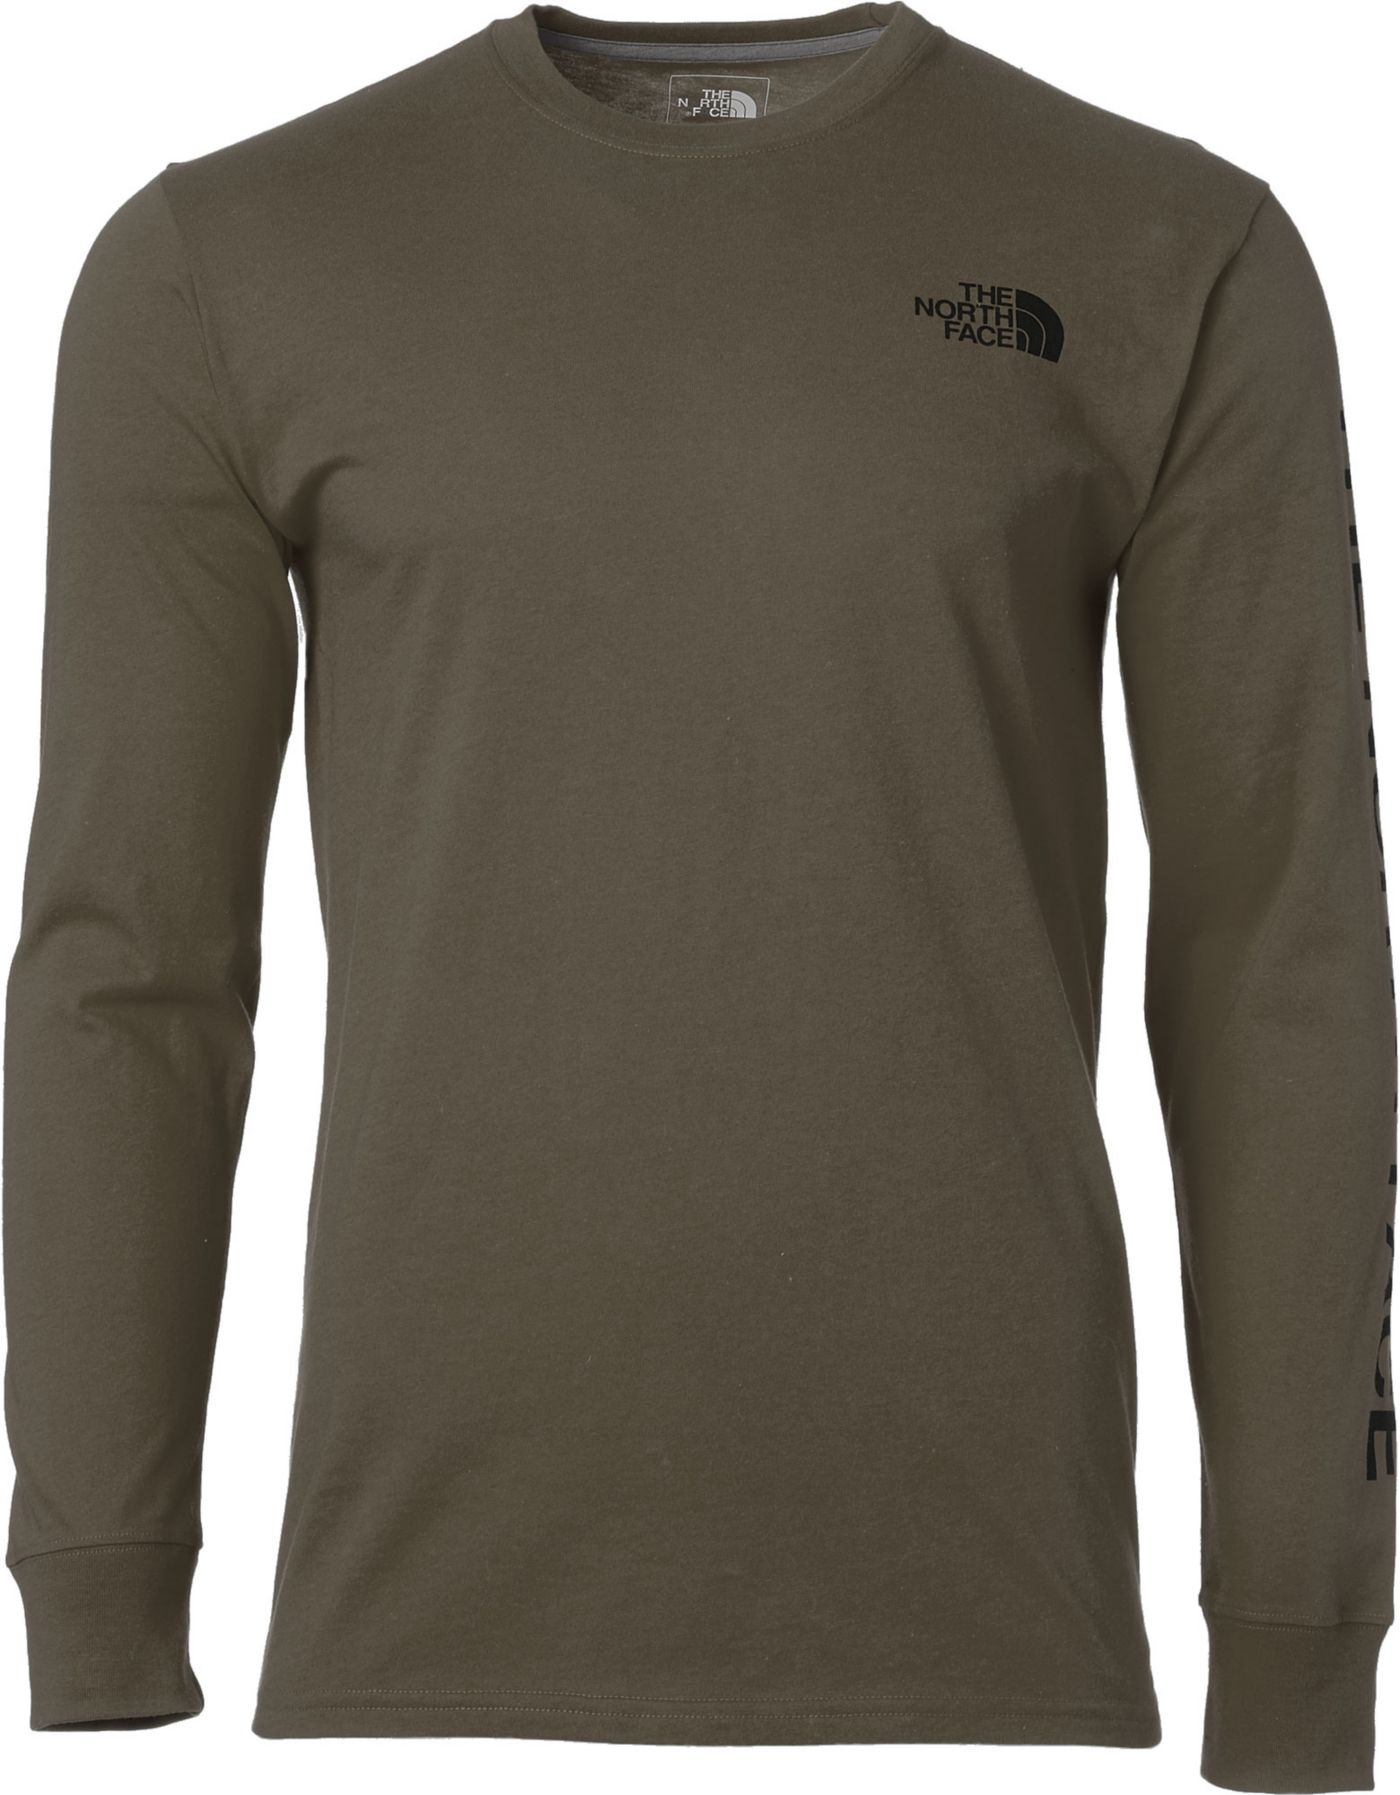 The North Face Men's Crew Long Sleeve Shirt